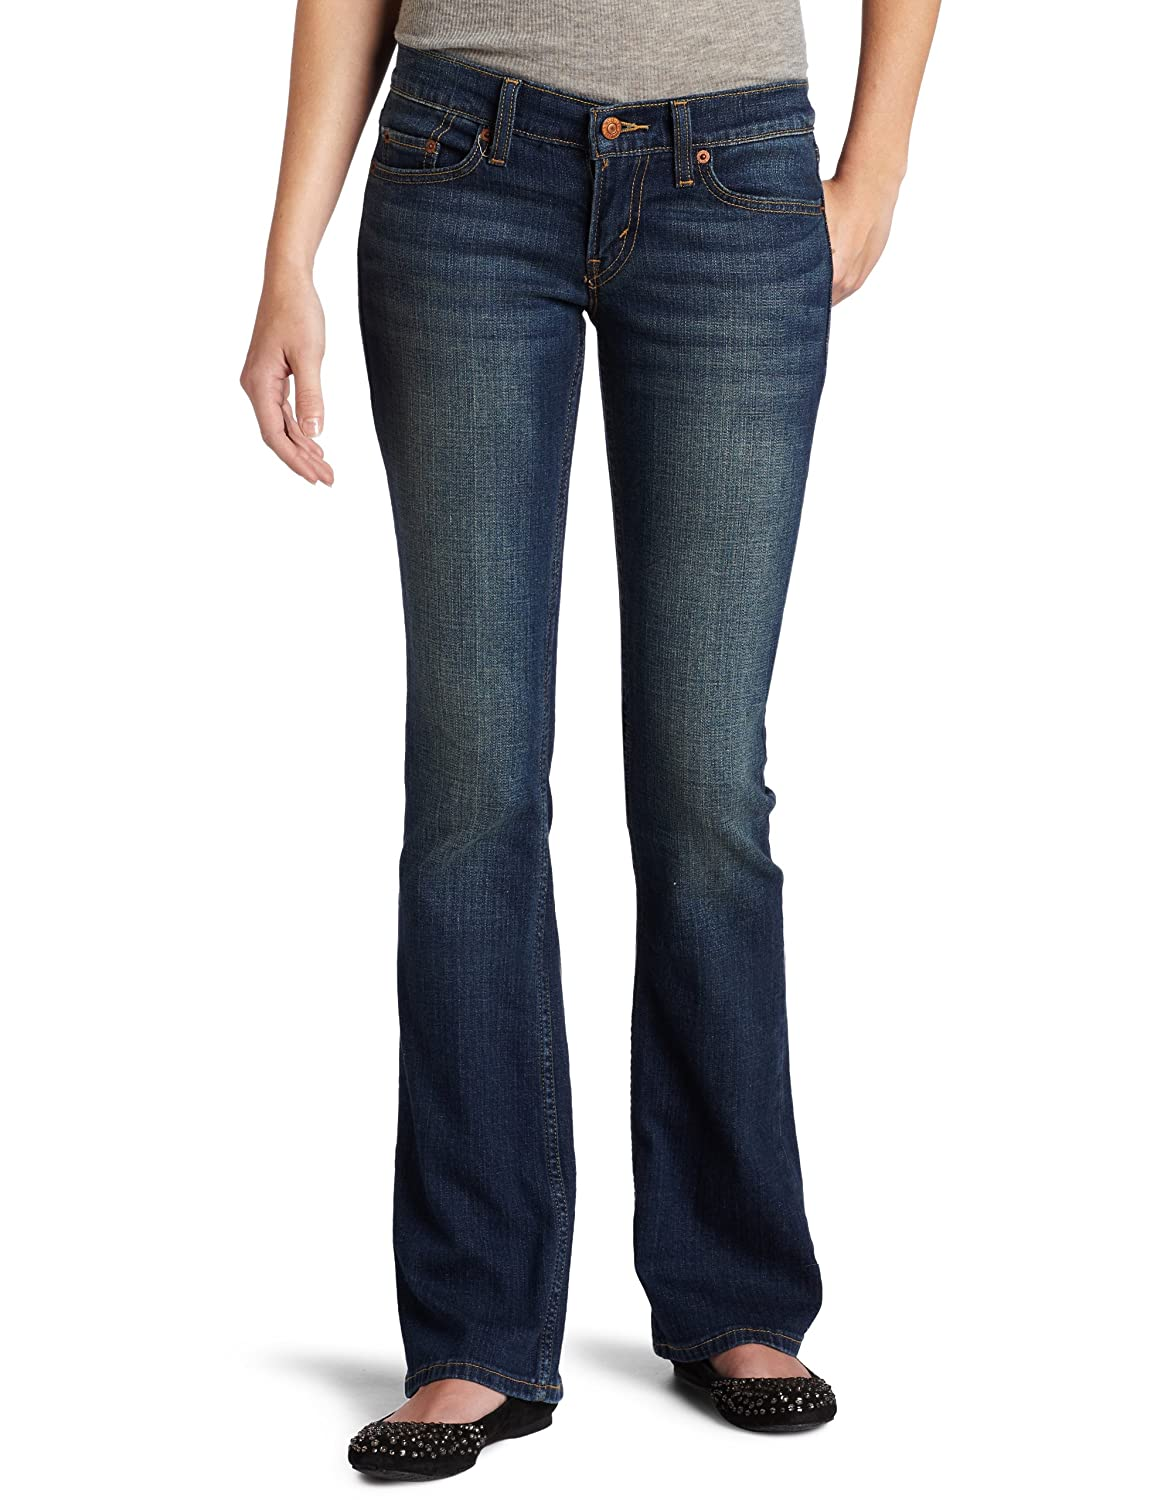 These jeans get great customer reviews their built-in stretch provides effortless The Best of Fall Styles· Fall Favorites.